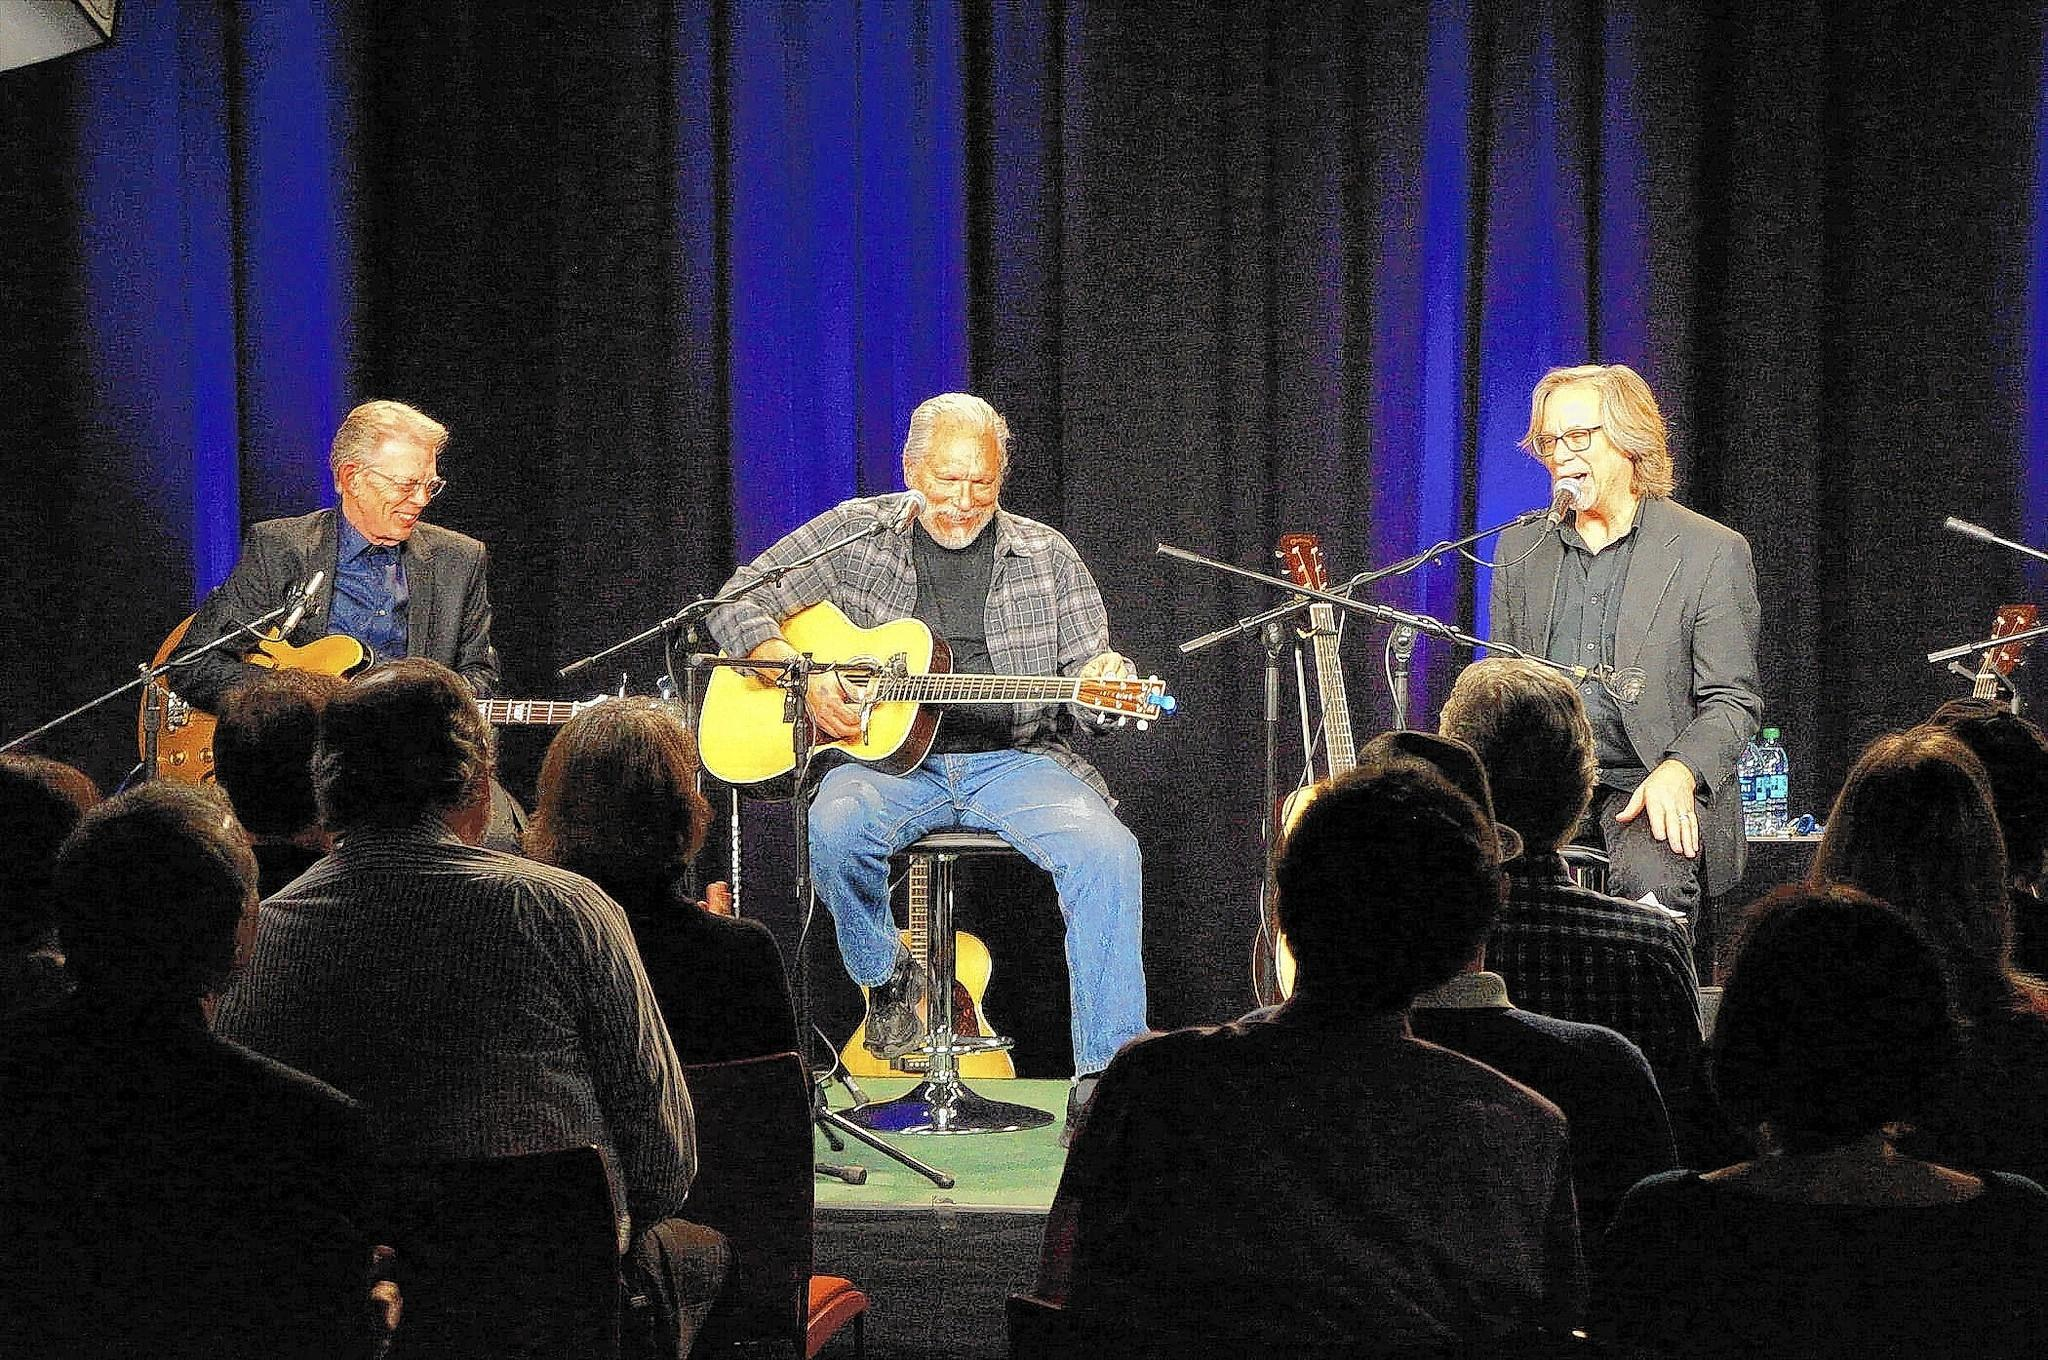 Lehigh Valley musician Craig Thatcher (right), with Jorma Kaukonen (middle) and Jack Casady of Hot Tuna in the PBS39 show 'Behind the Guitar.'